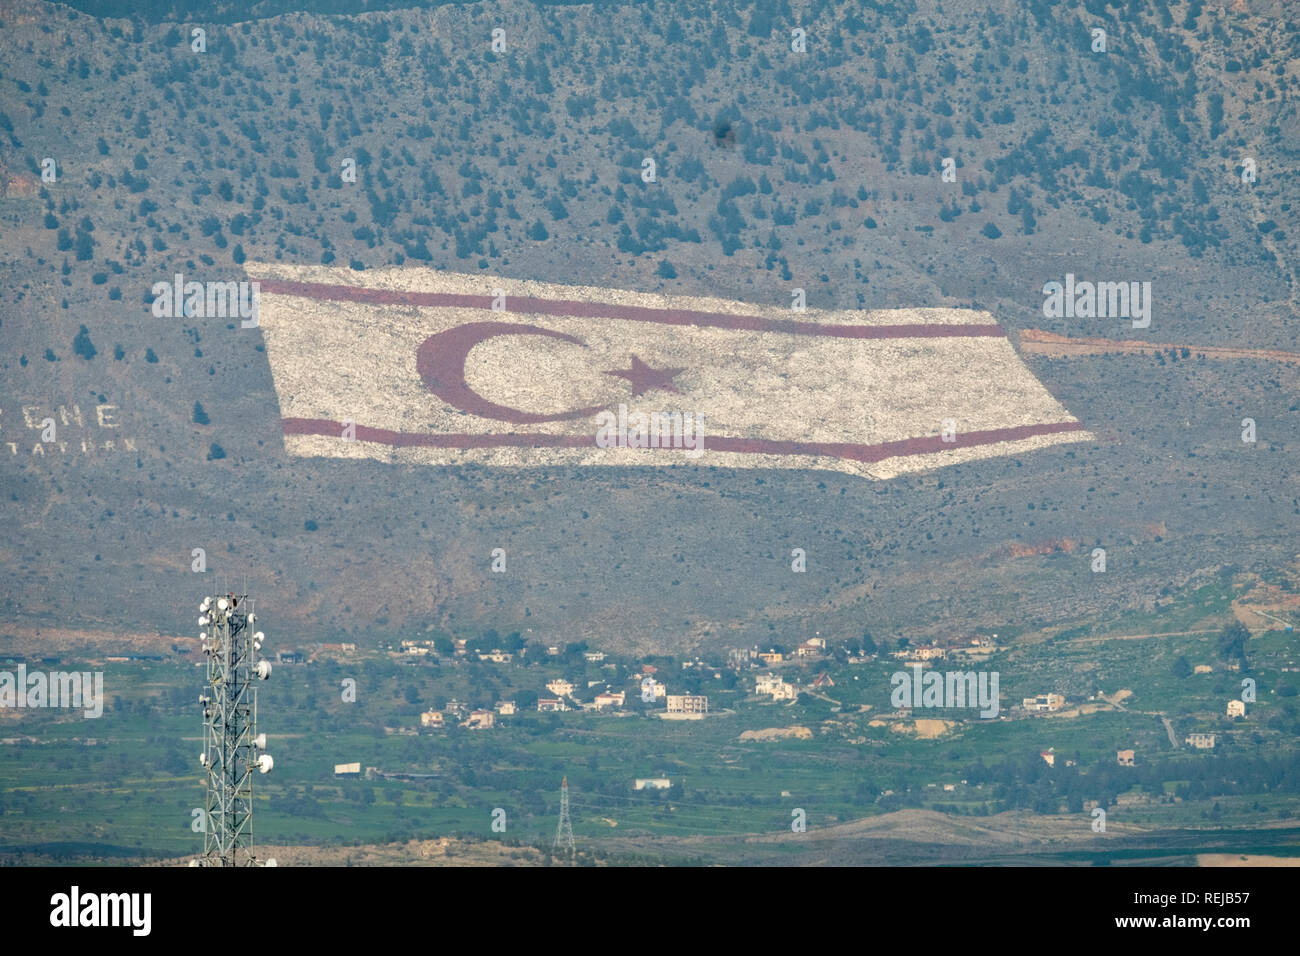 A giant flag marked on the slopes of the south side of Kyrenian mountains facing Nicosia and the Republic of Cyprus Stock Photo